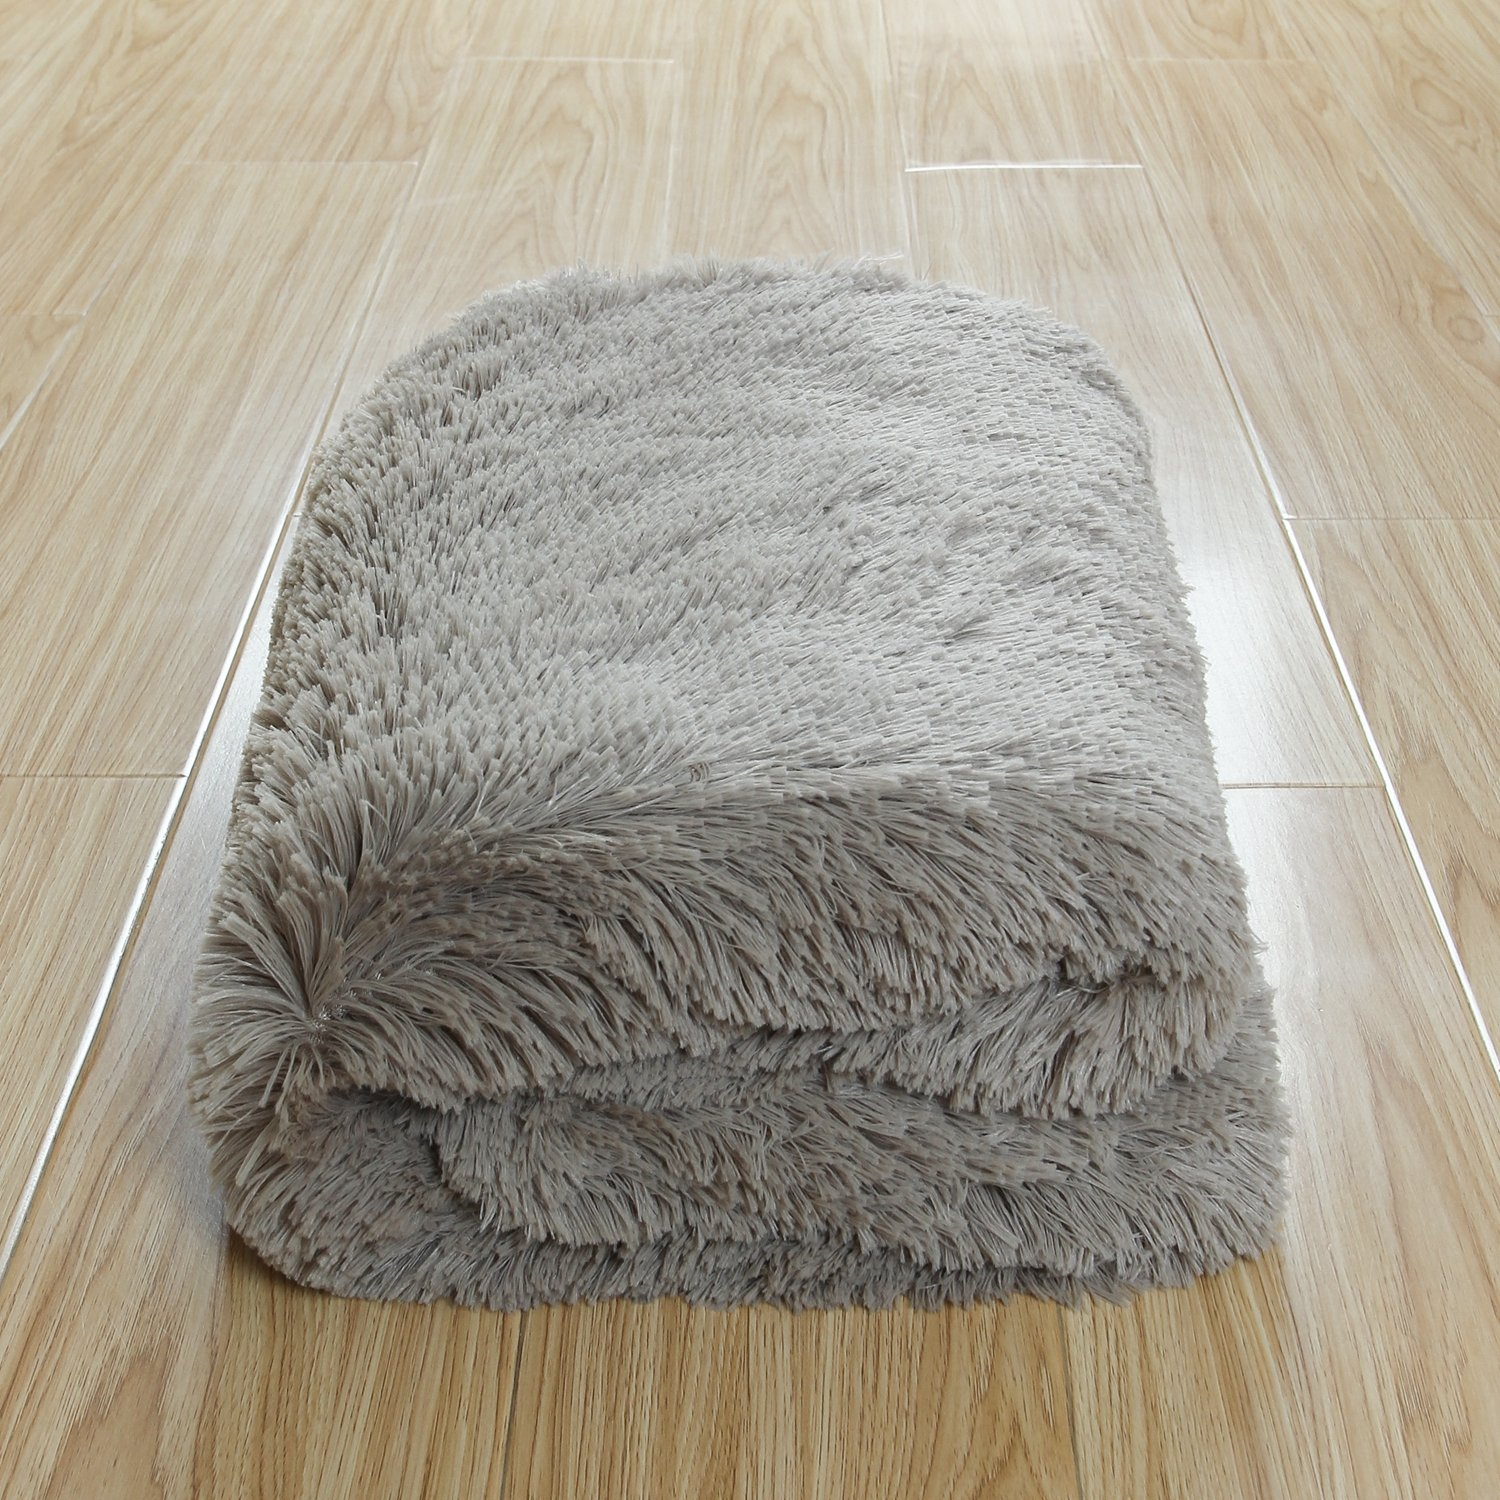 Ltd DSM060P CaliTime Super Soft Blanket Throw for Couch Sofa Bed Elegant Cozy Plush Warm Faux Fur Solid Color 60 X 80 Inches Gold Qingdao PT Trading Co